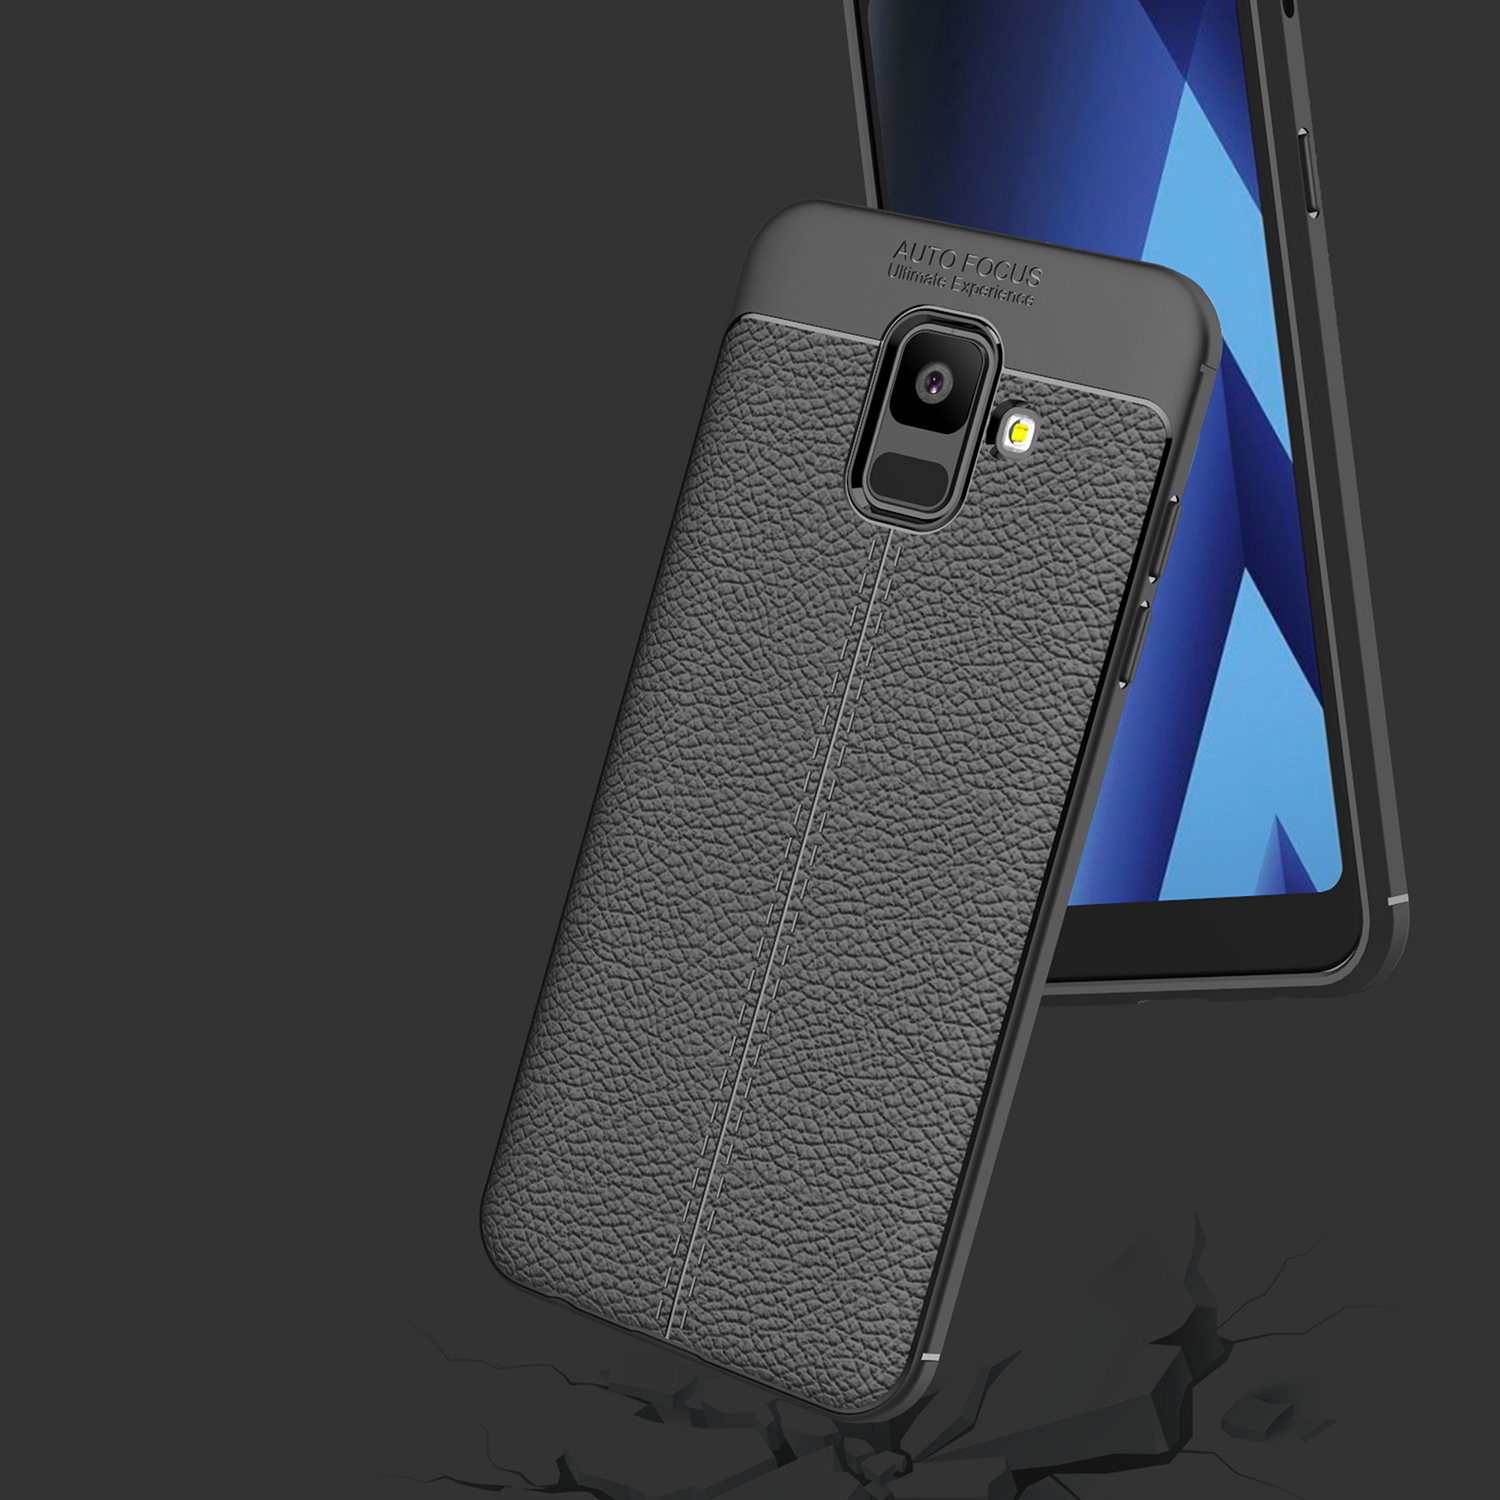 Bakeey Litchi Leather Soft TPU Protective Case for Samsung Galaxy A6 2018